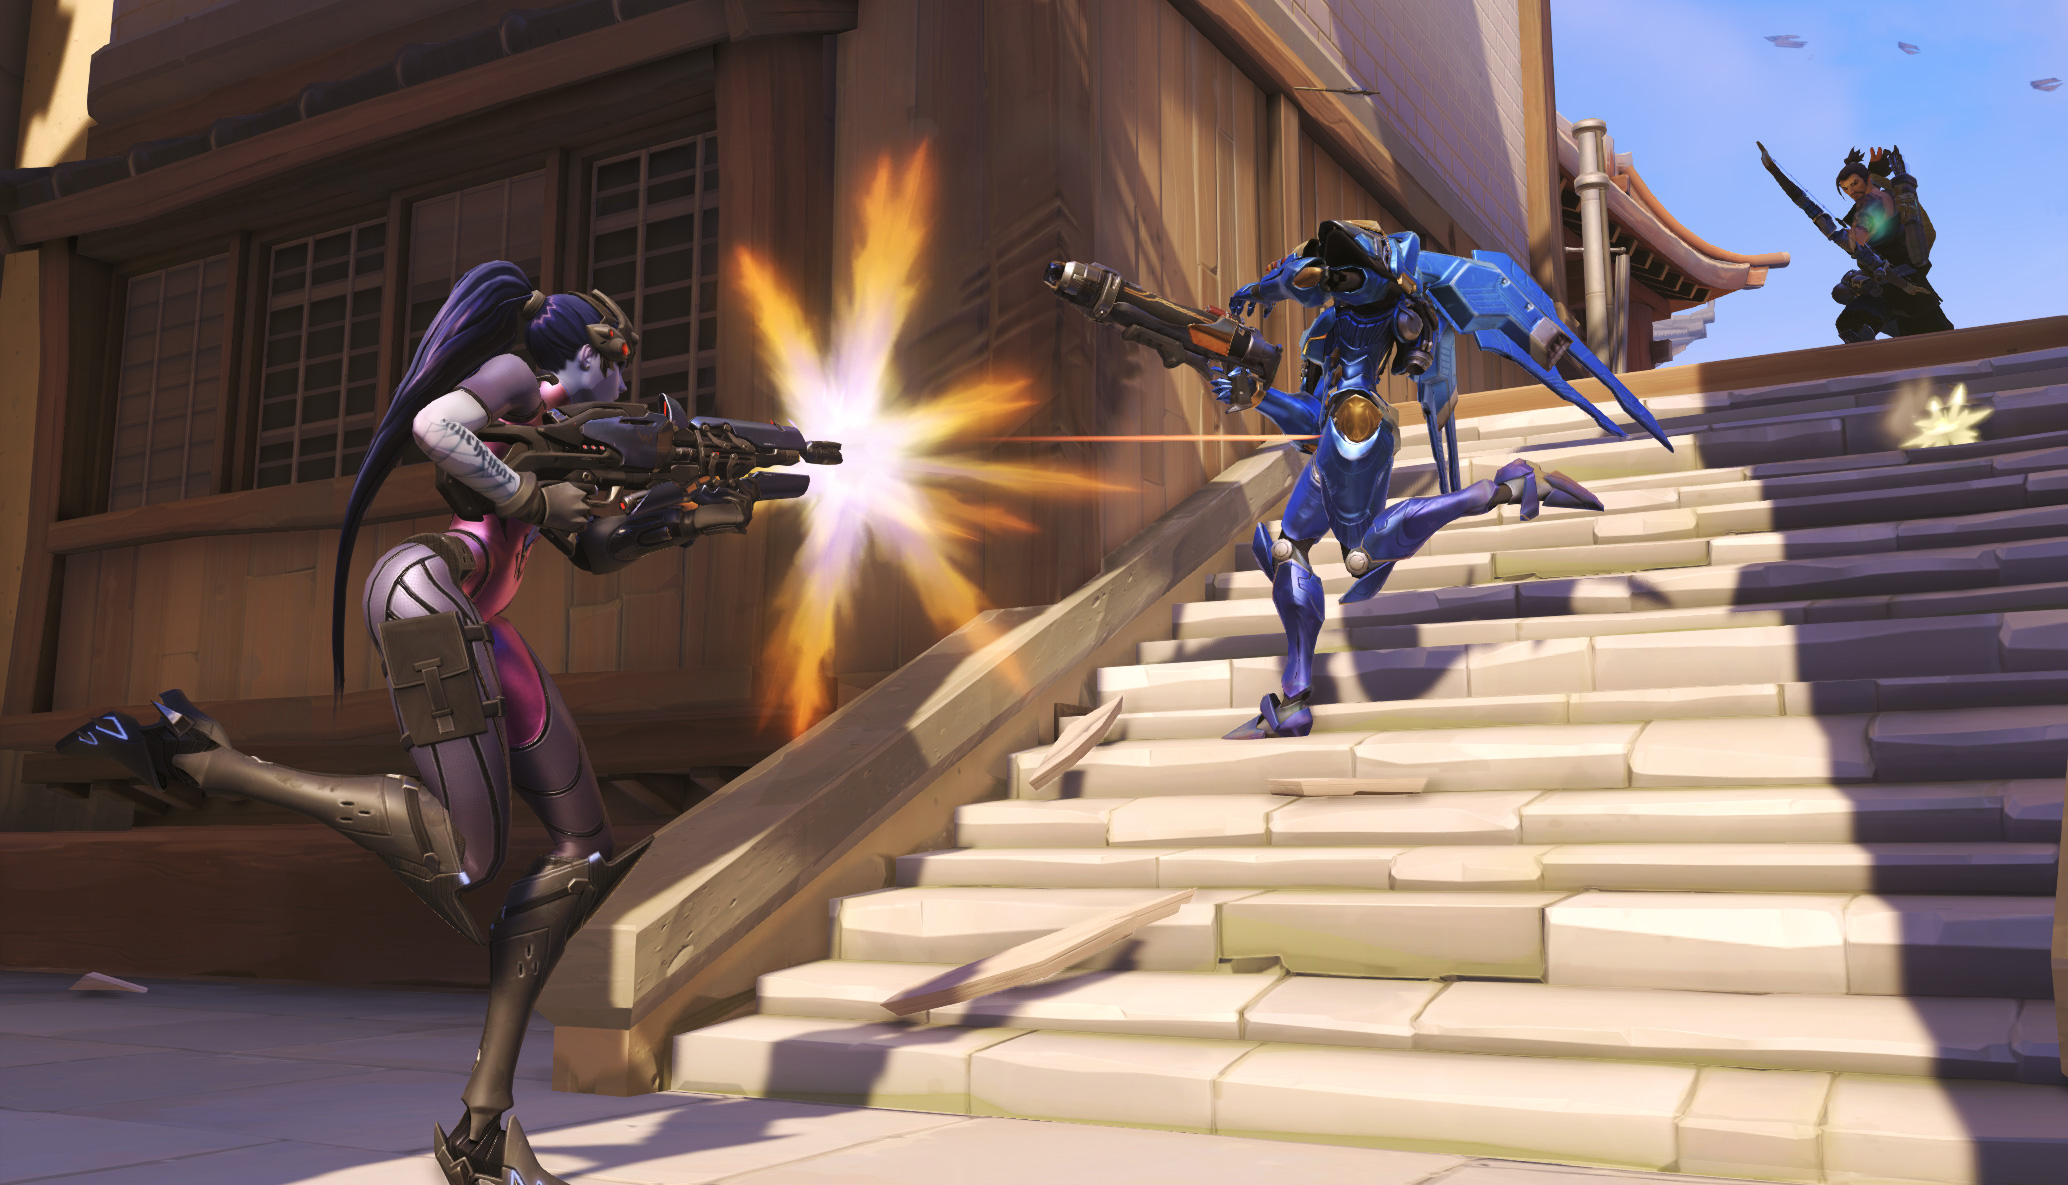 overwatch widowmaker screenshot 005 2068.0 Overwatch Just Broke This Impressive Sales Record For Blizzard